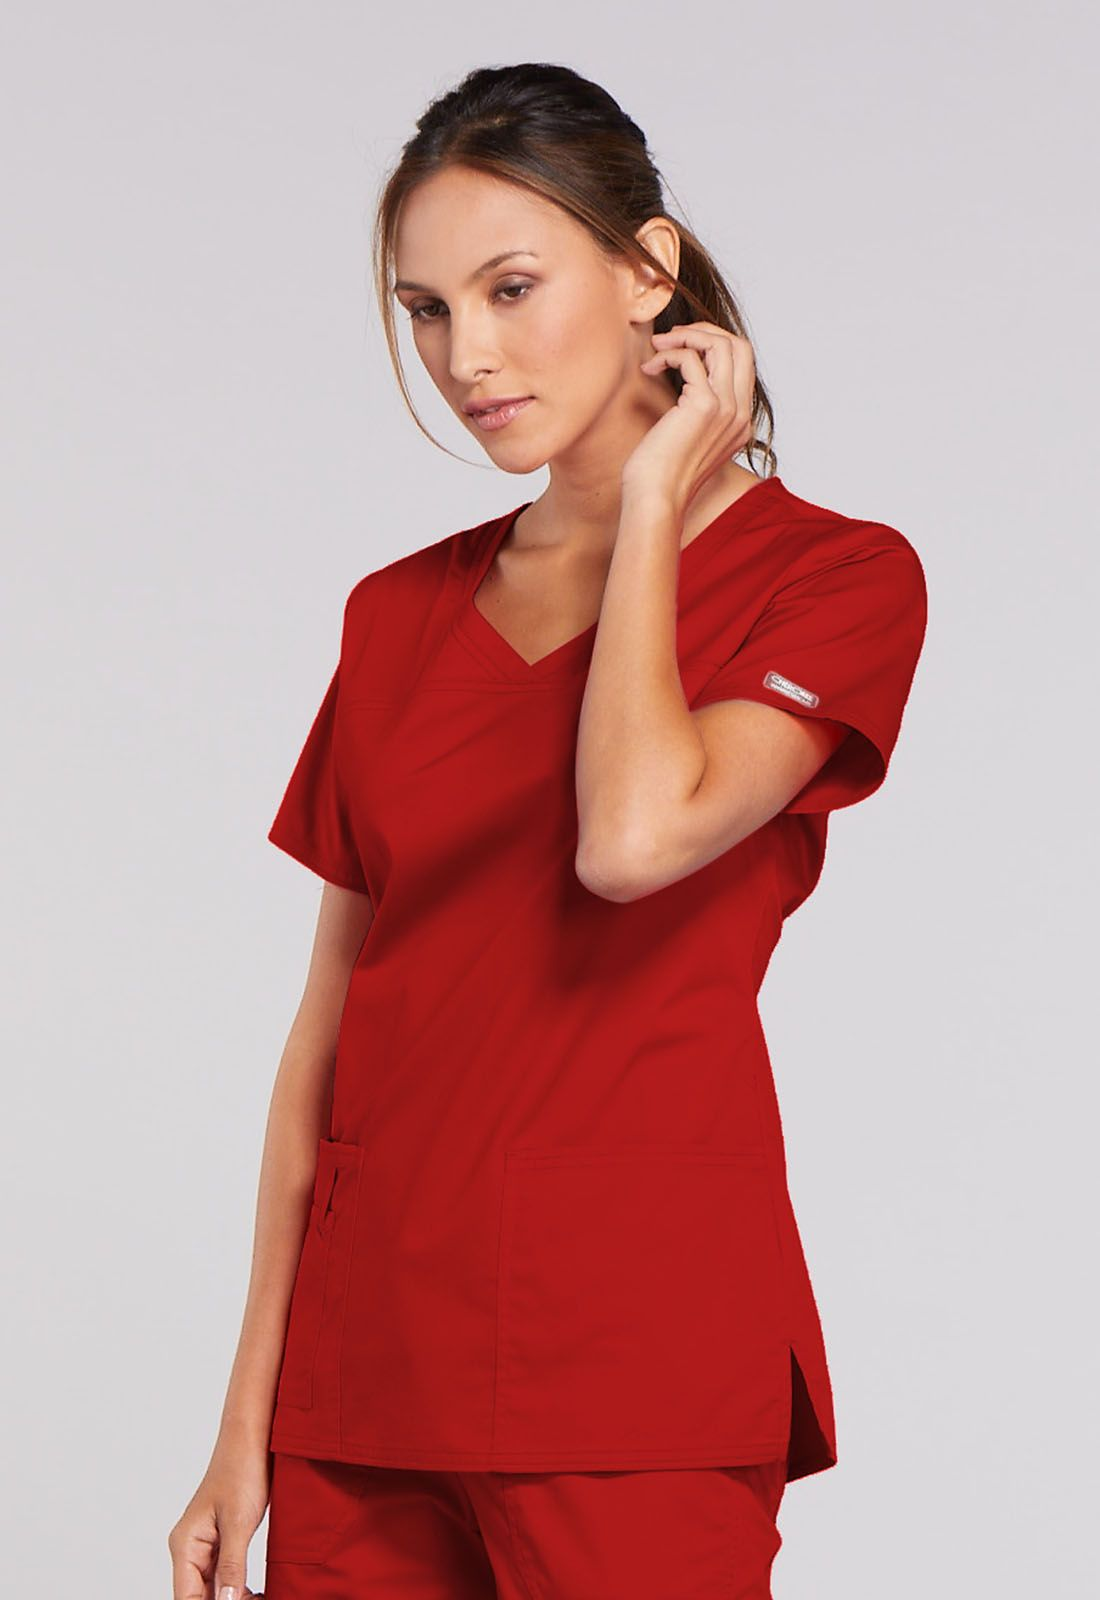 https://medcloth.by/images/stories/virtuemart/product/cherokee-4727-red-25.jpg